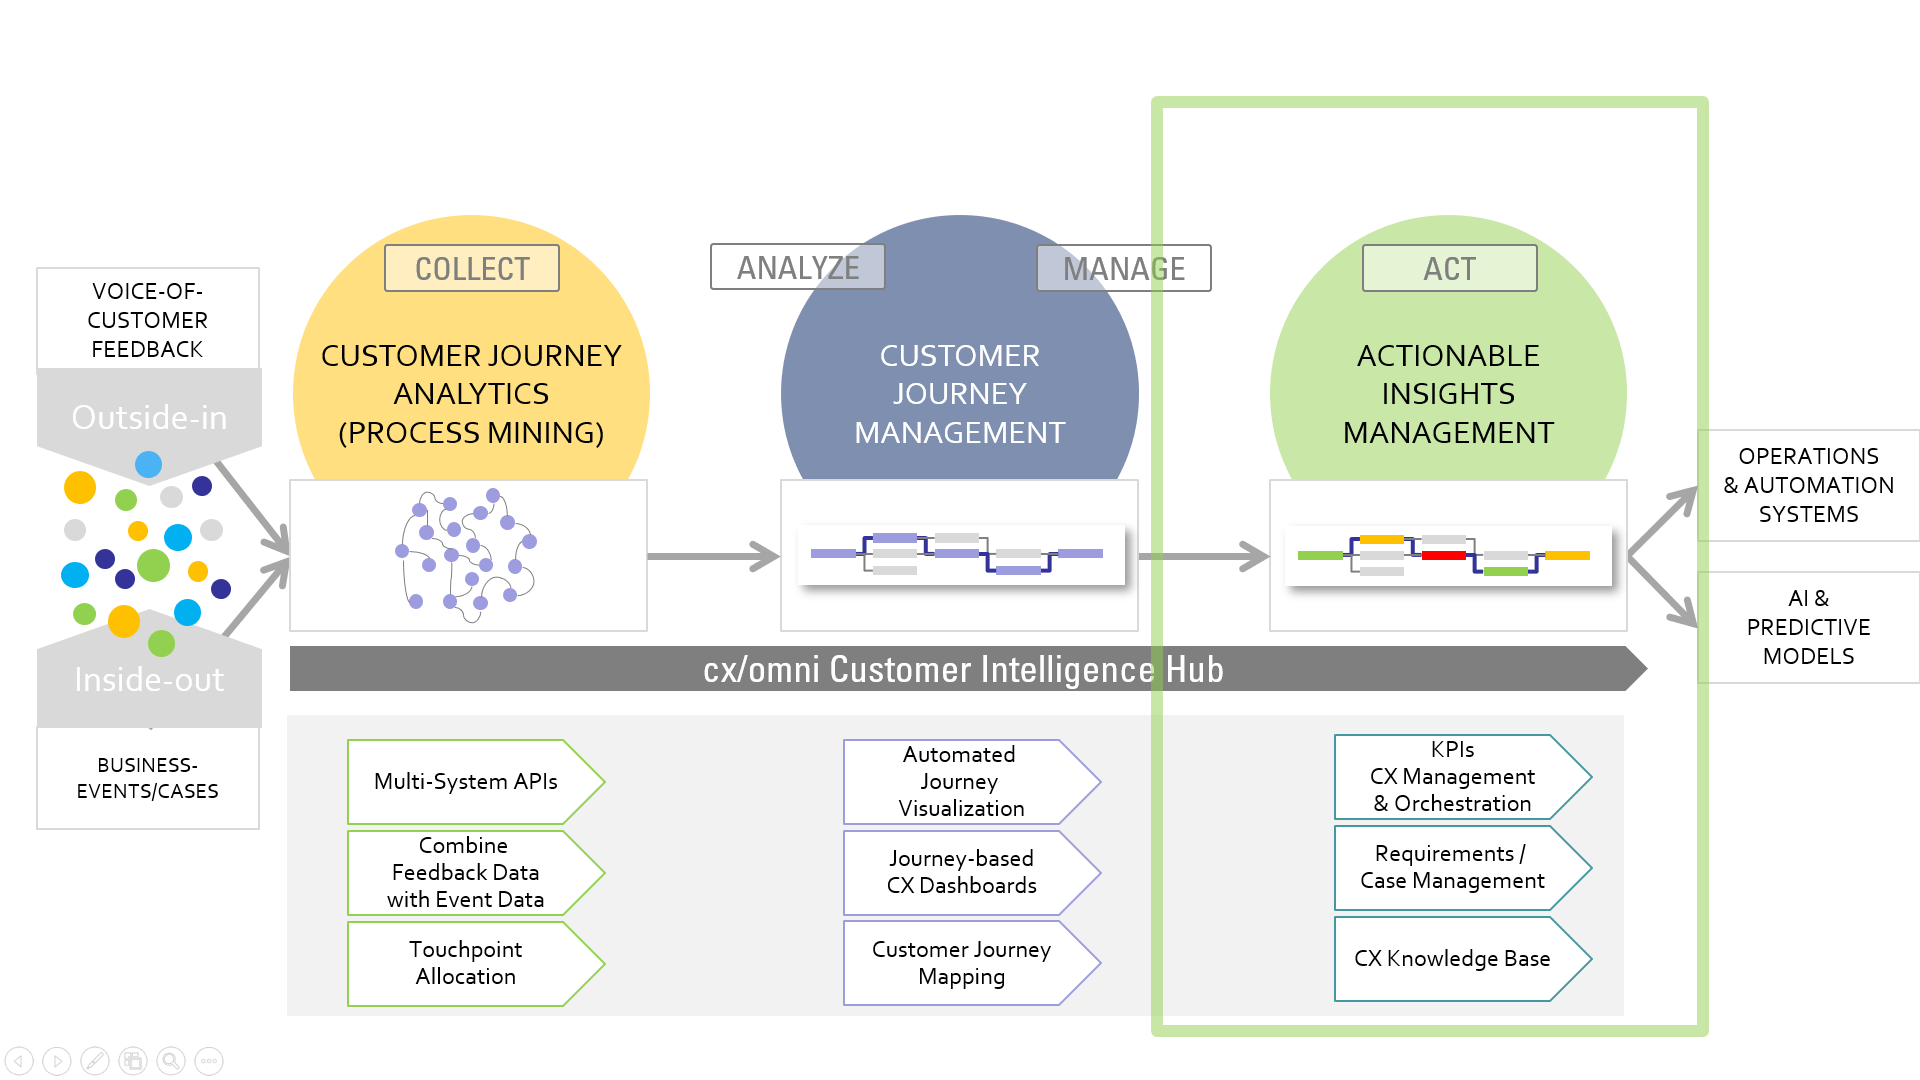 actionable insights management